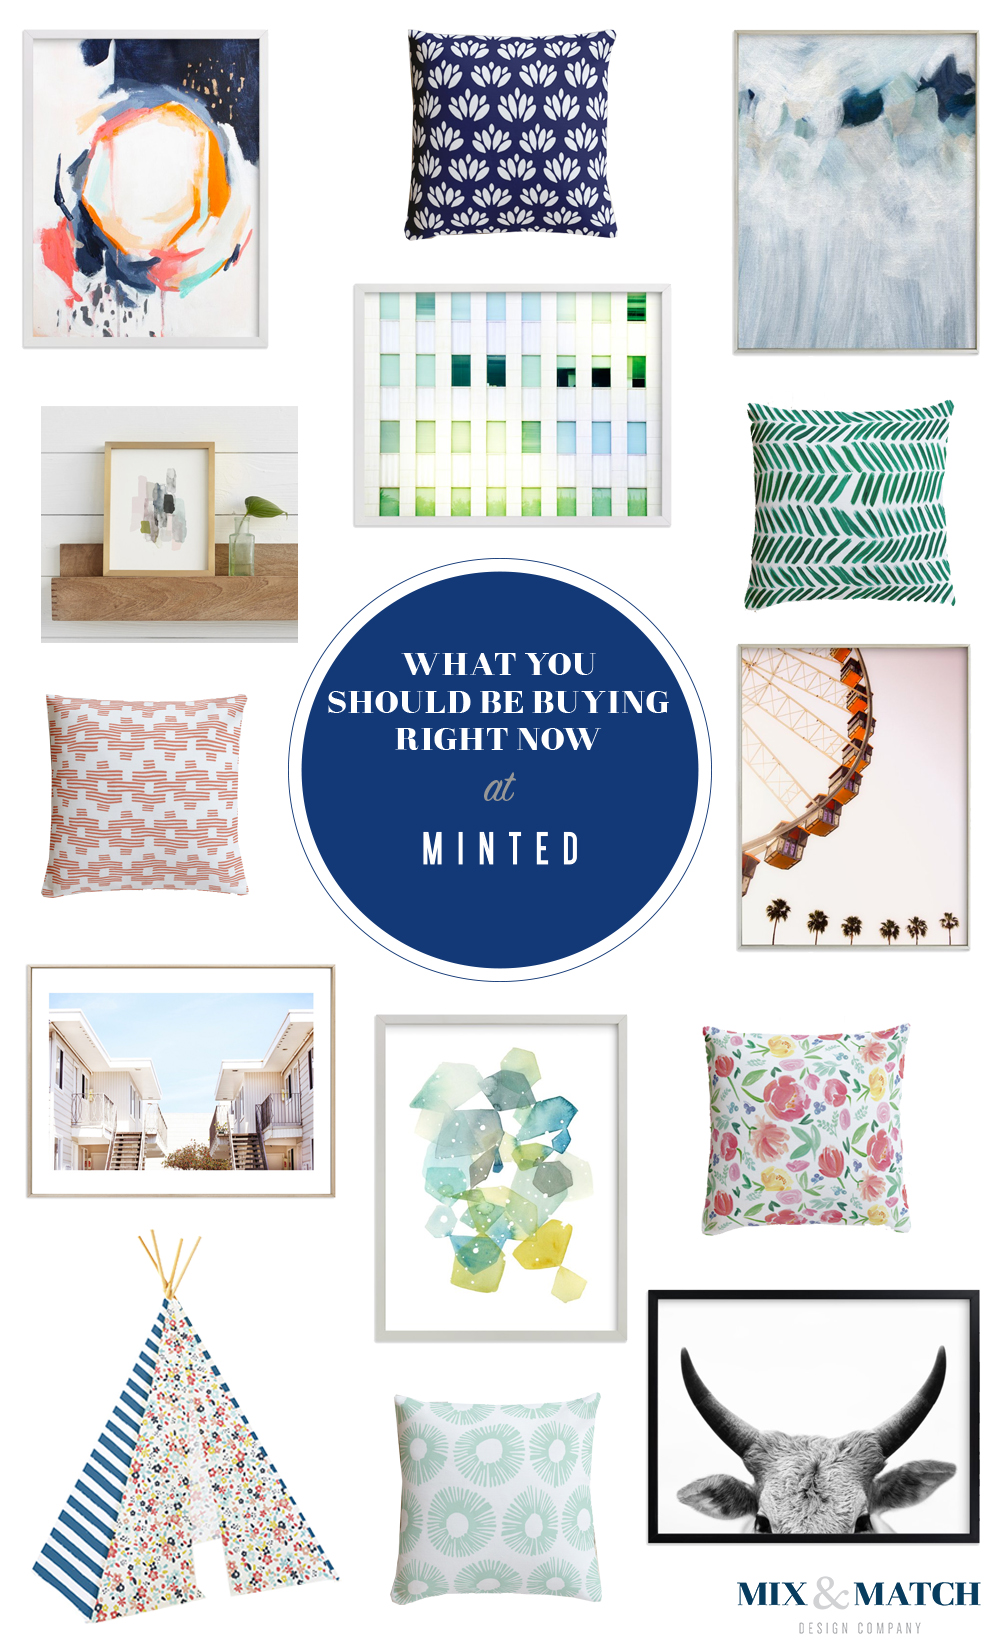 Minted: a secret source for home decor Art prints, art photography prints, abstract art, pillows, kid's teepees, and more! Shop these picks on the blog.